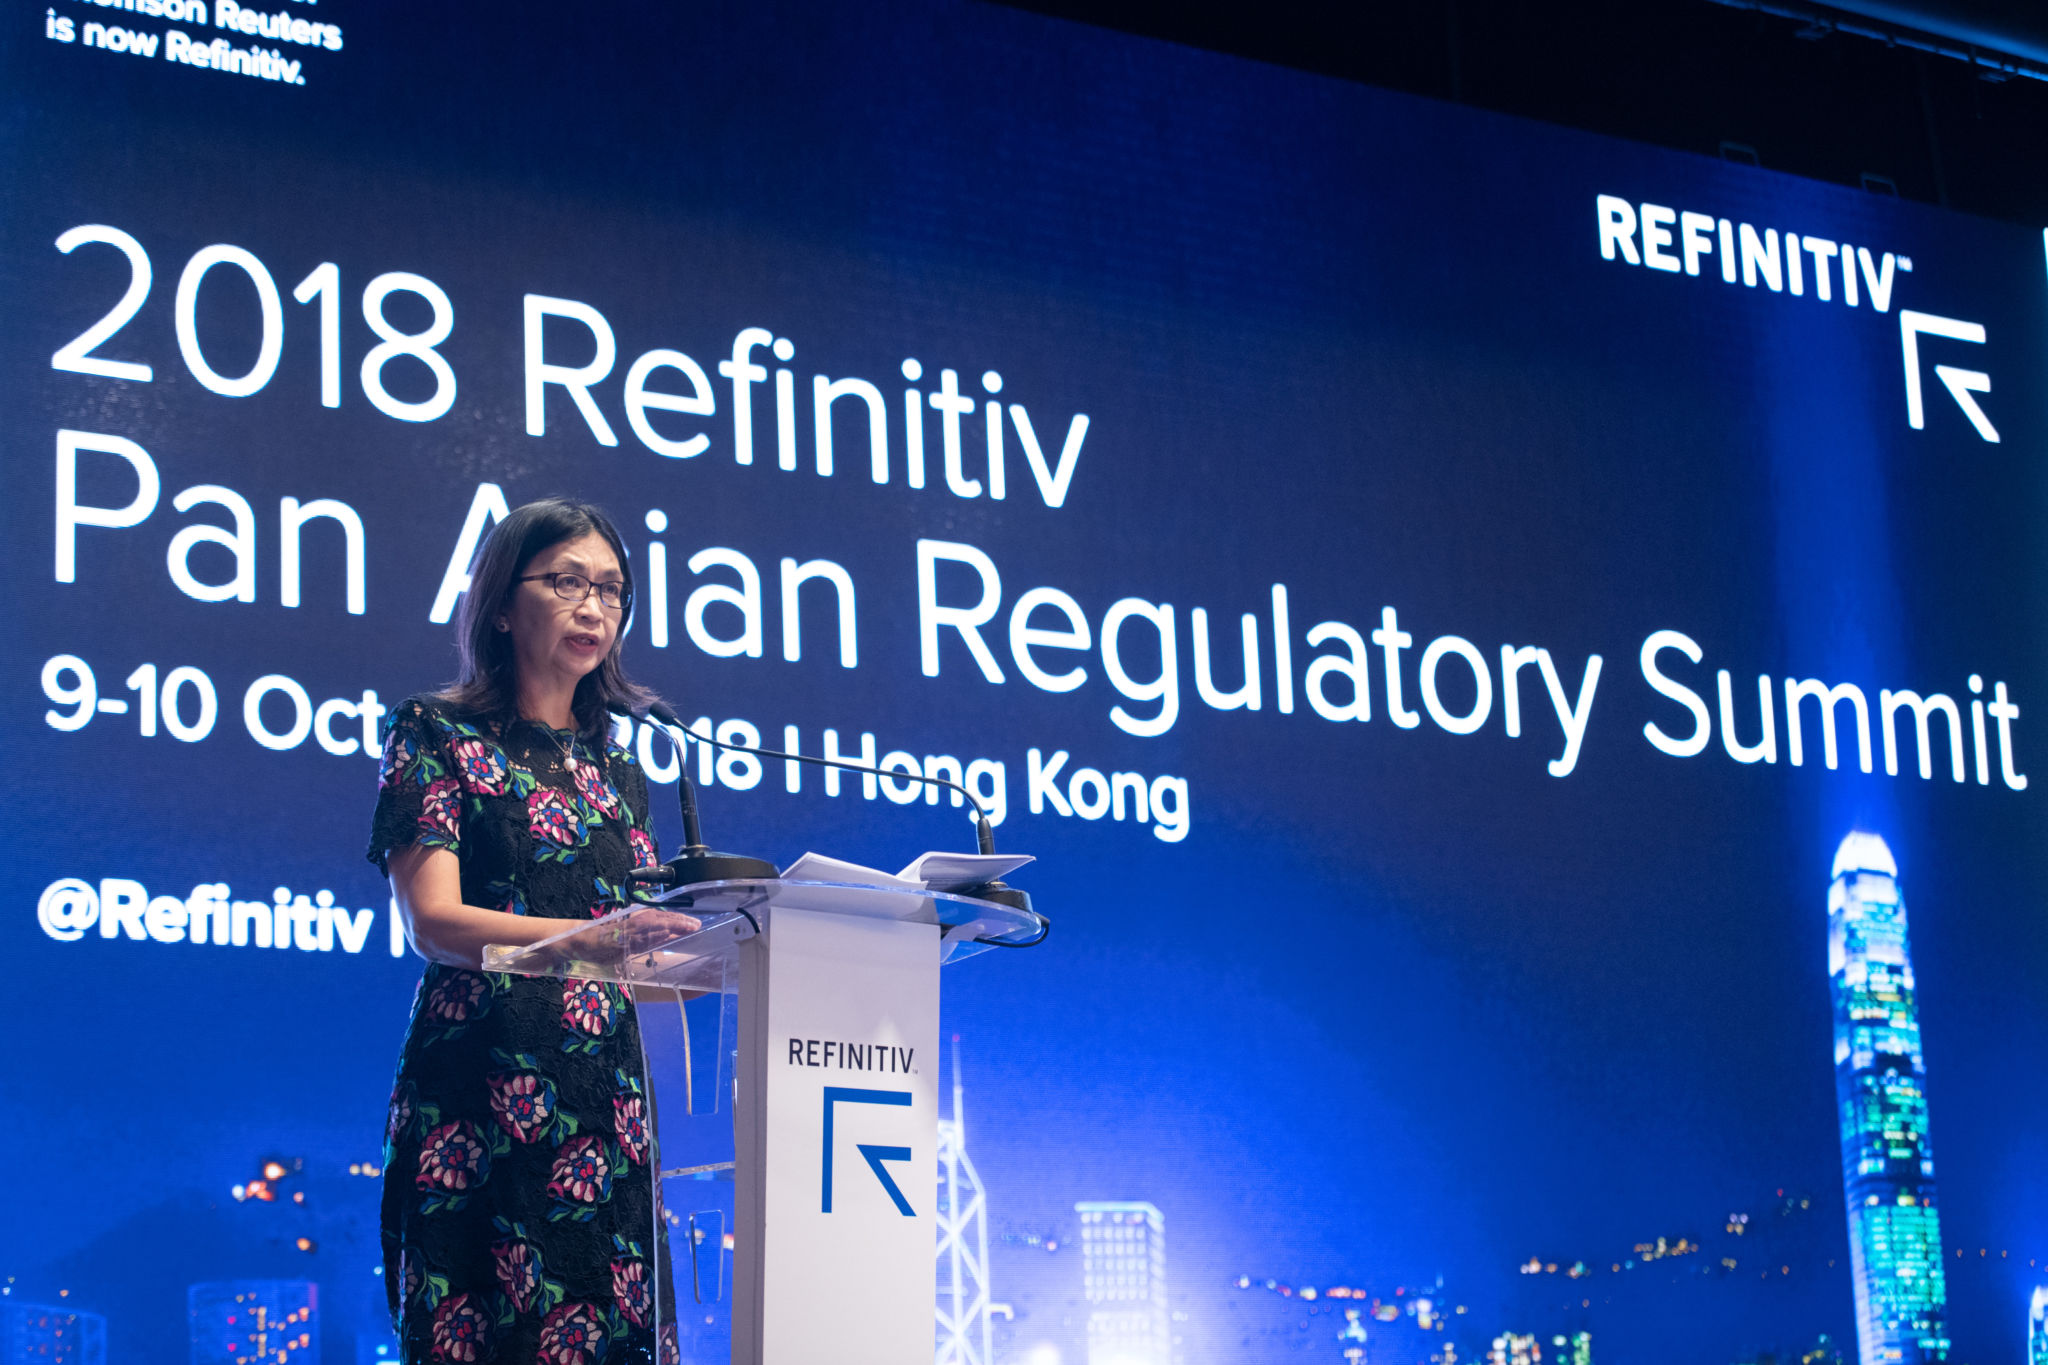 Keynote presentation by Julia Leung, Deputy CEO and Executive Director, Intermediaries, Hong Kong Securities and Futures Commission during the 2018 Refinitiv Pan Asian Regulatory Summit